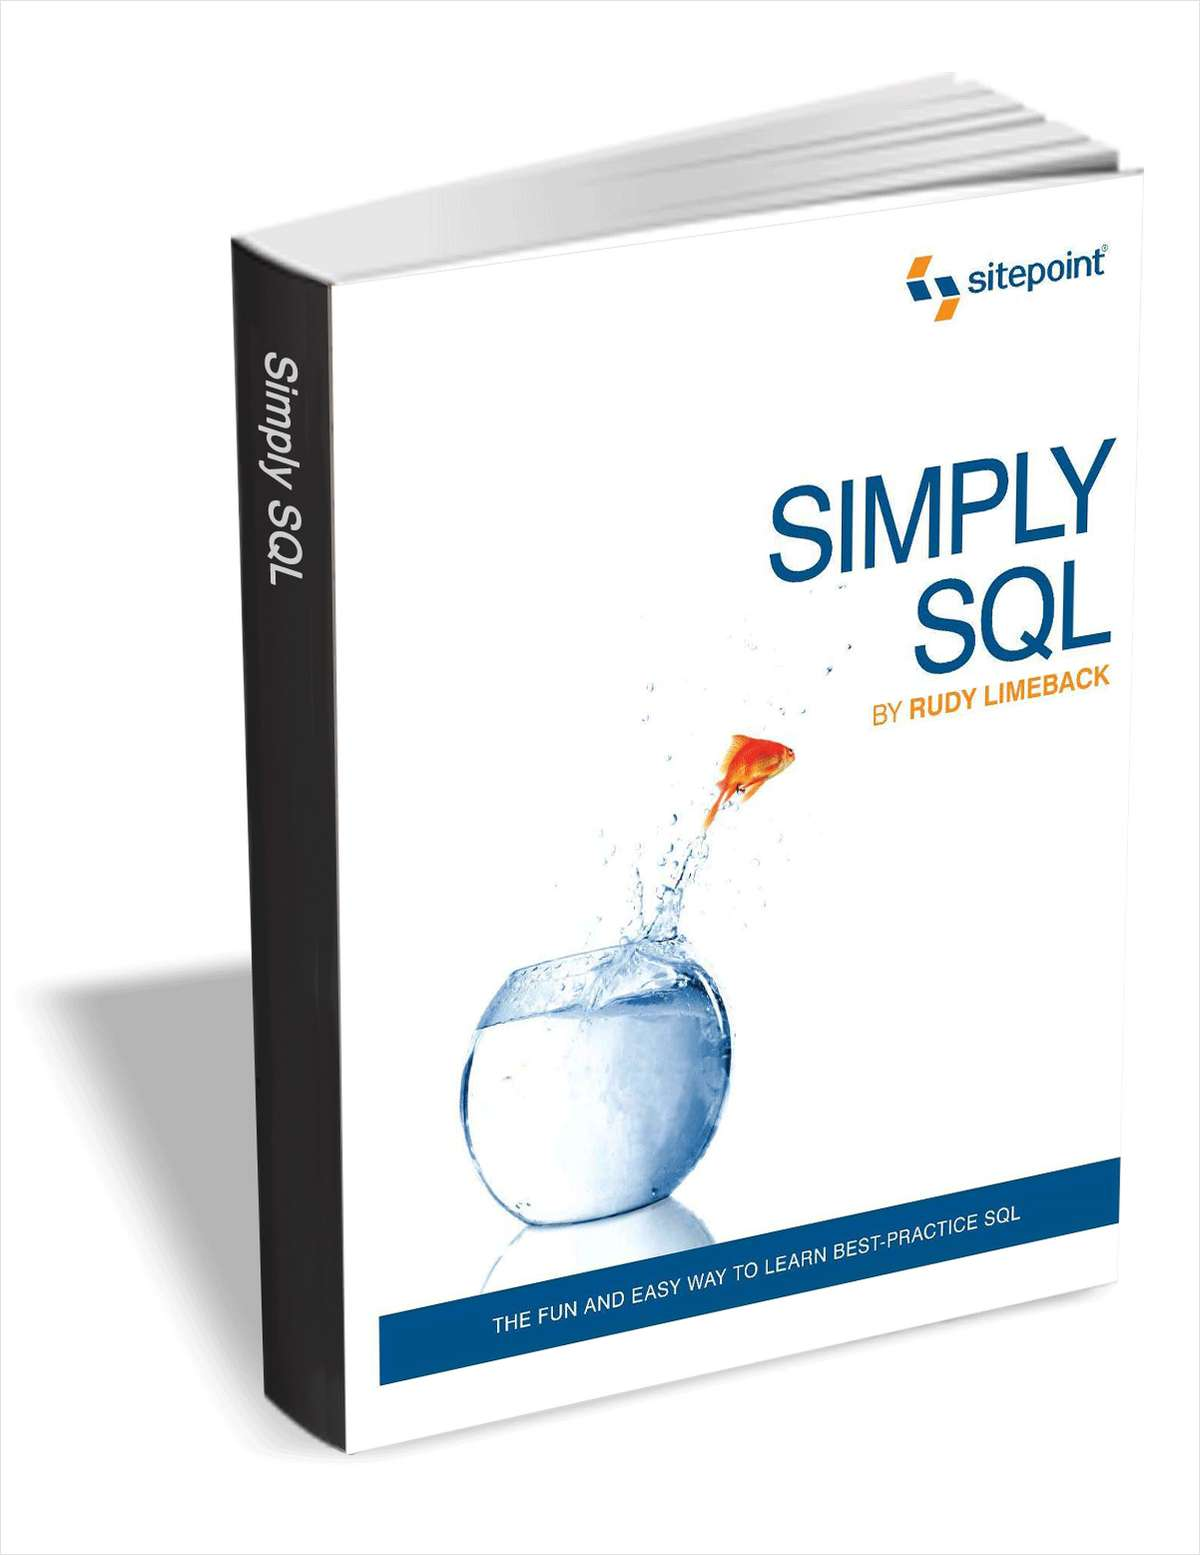 Simply SQL ($29 Value FREE For a Limited Time)